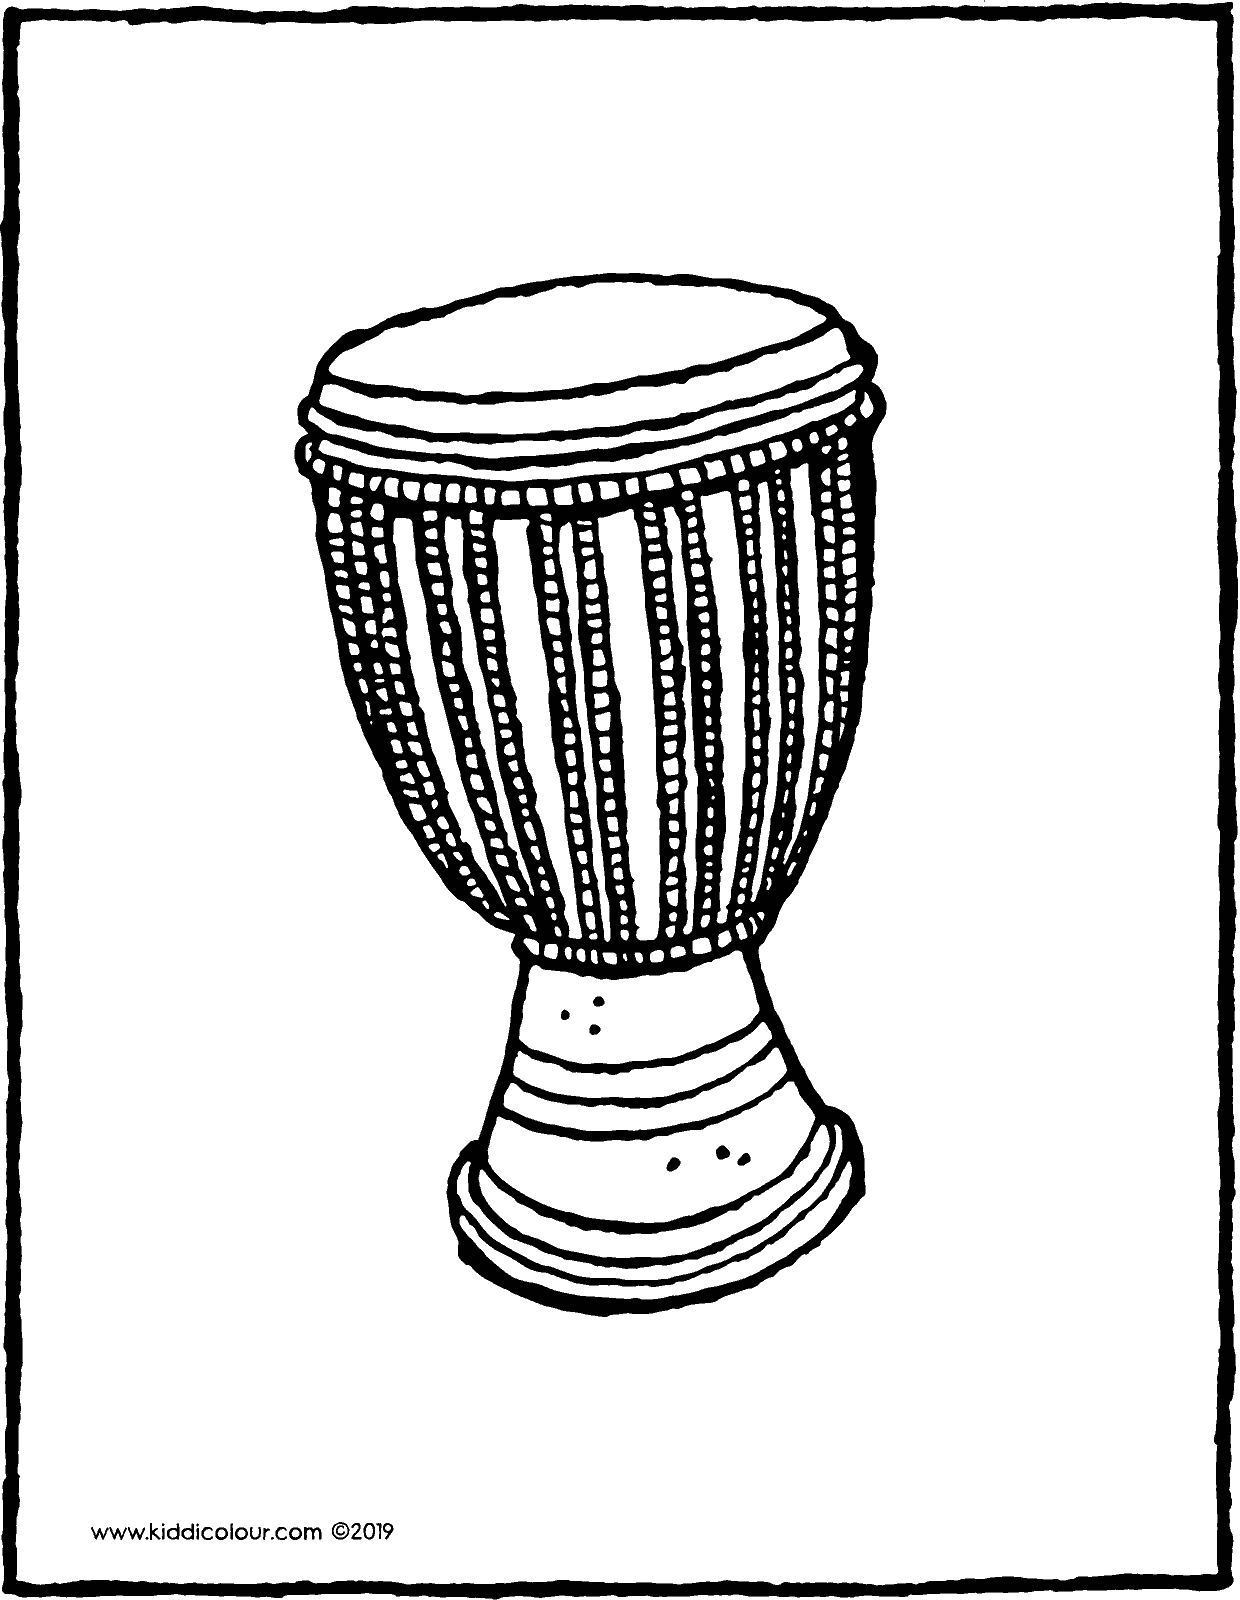 djembe or African drum colouring page drawing picture 01V